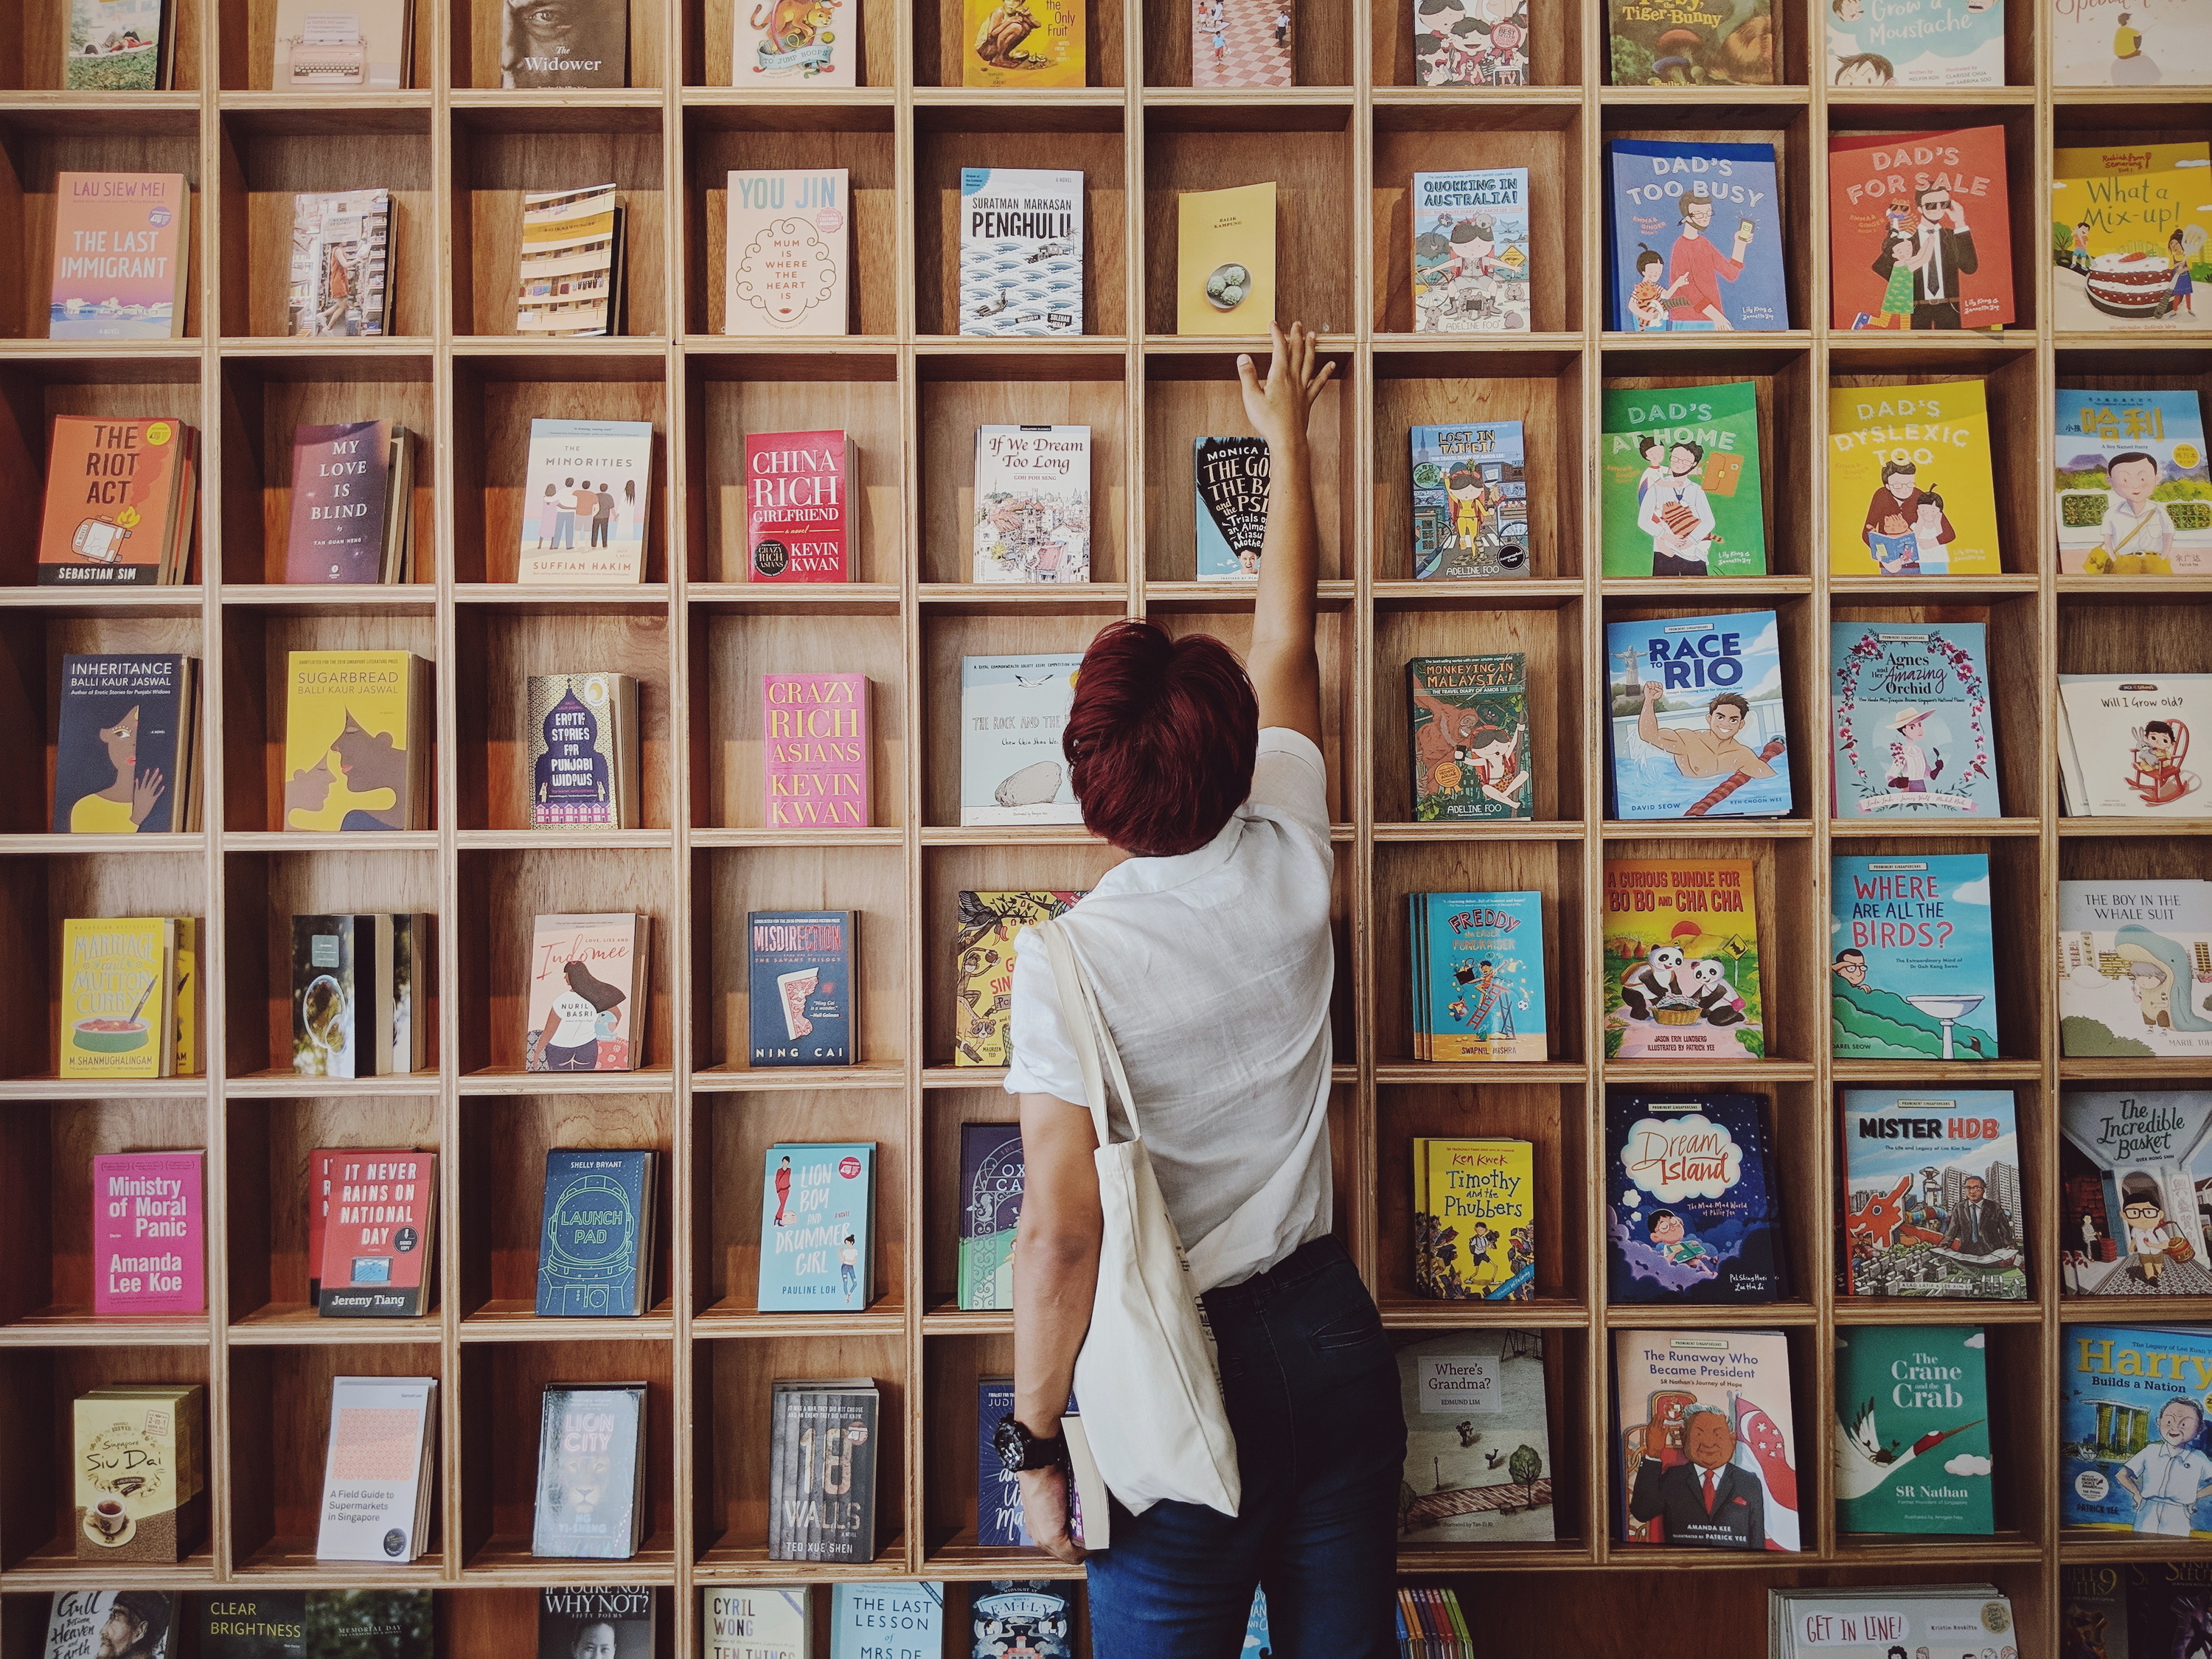 Epigram books, bookstore